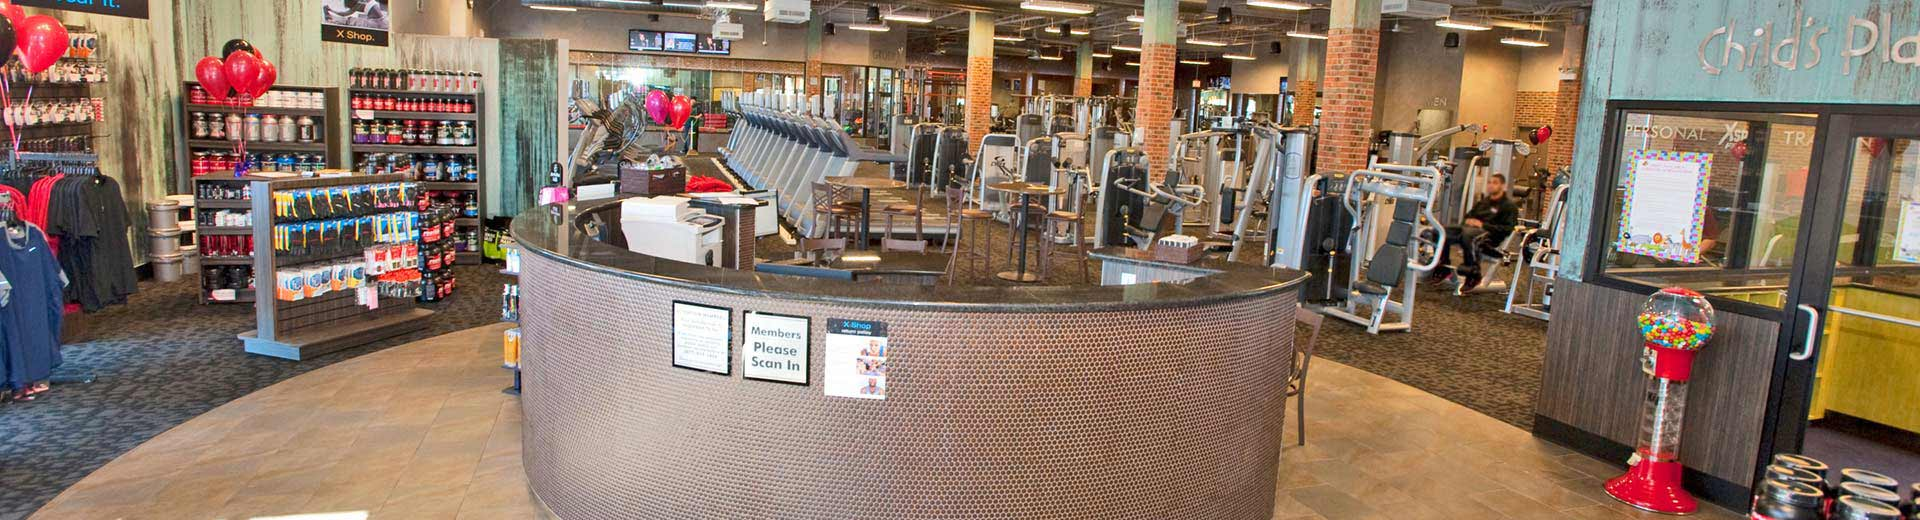 belmont & sawyer chicago gym amenities | xsport fitness